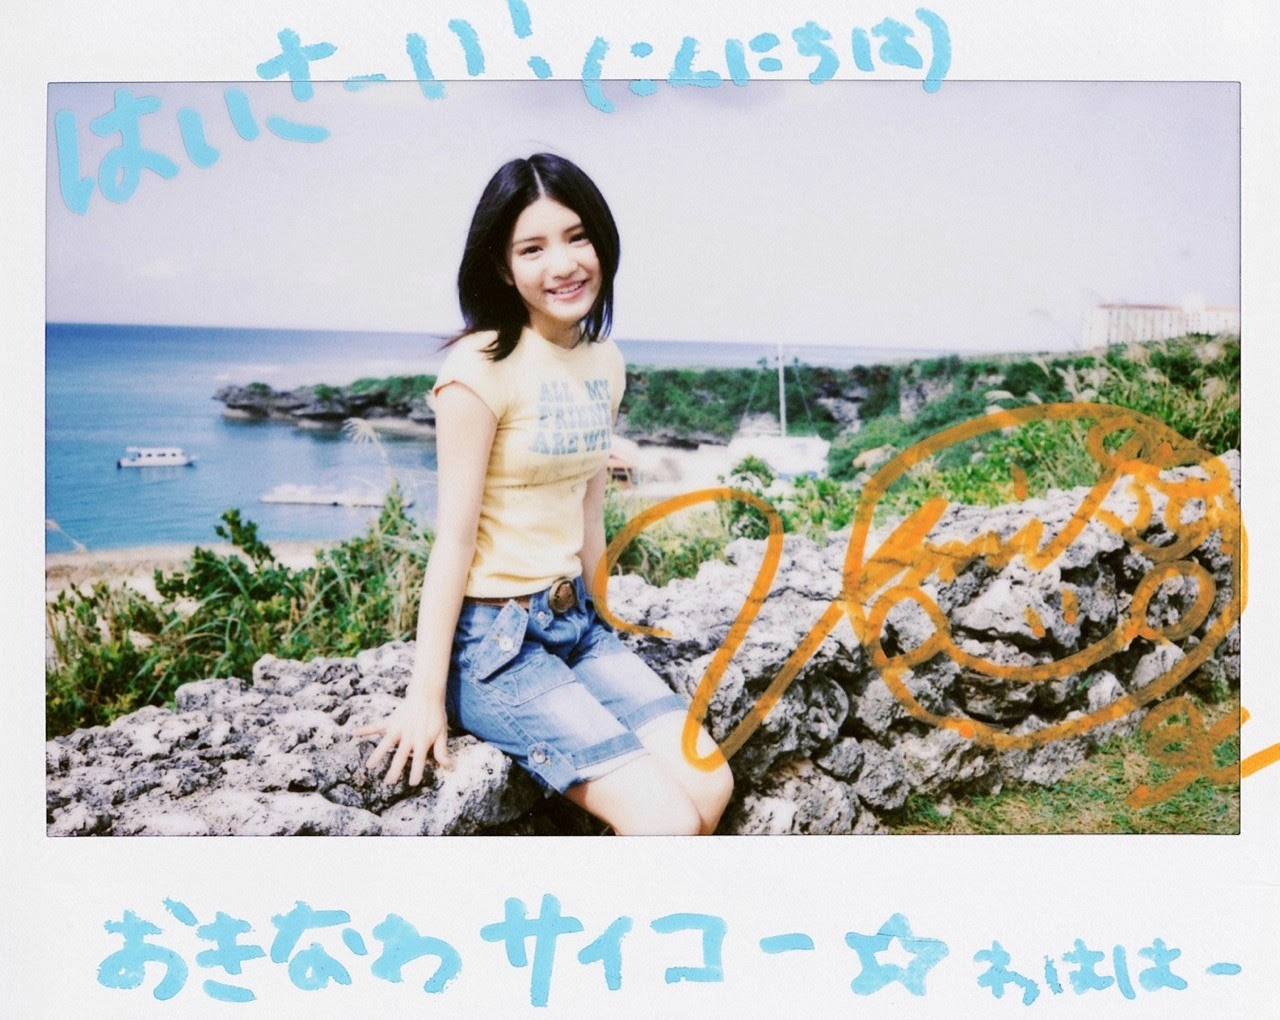 Umi chans smile explodes on some southern island001